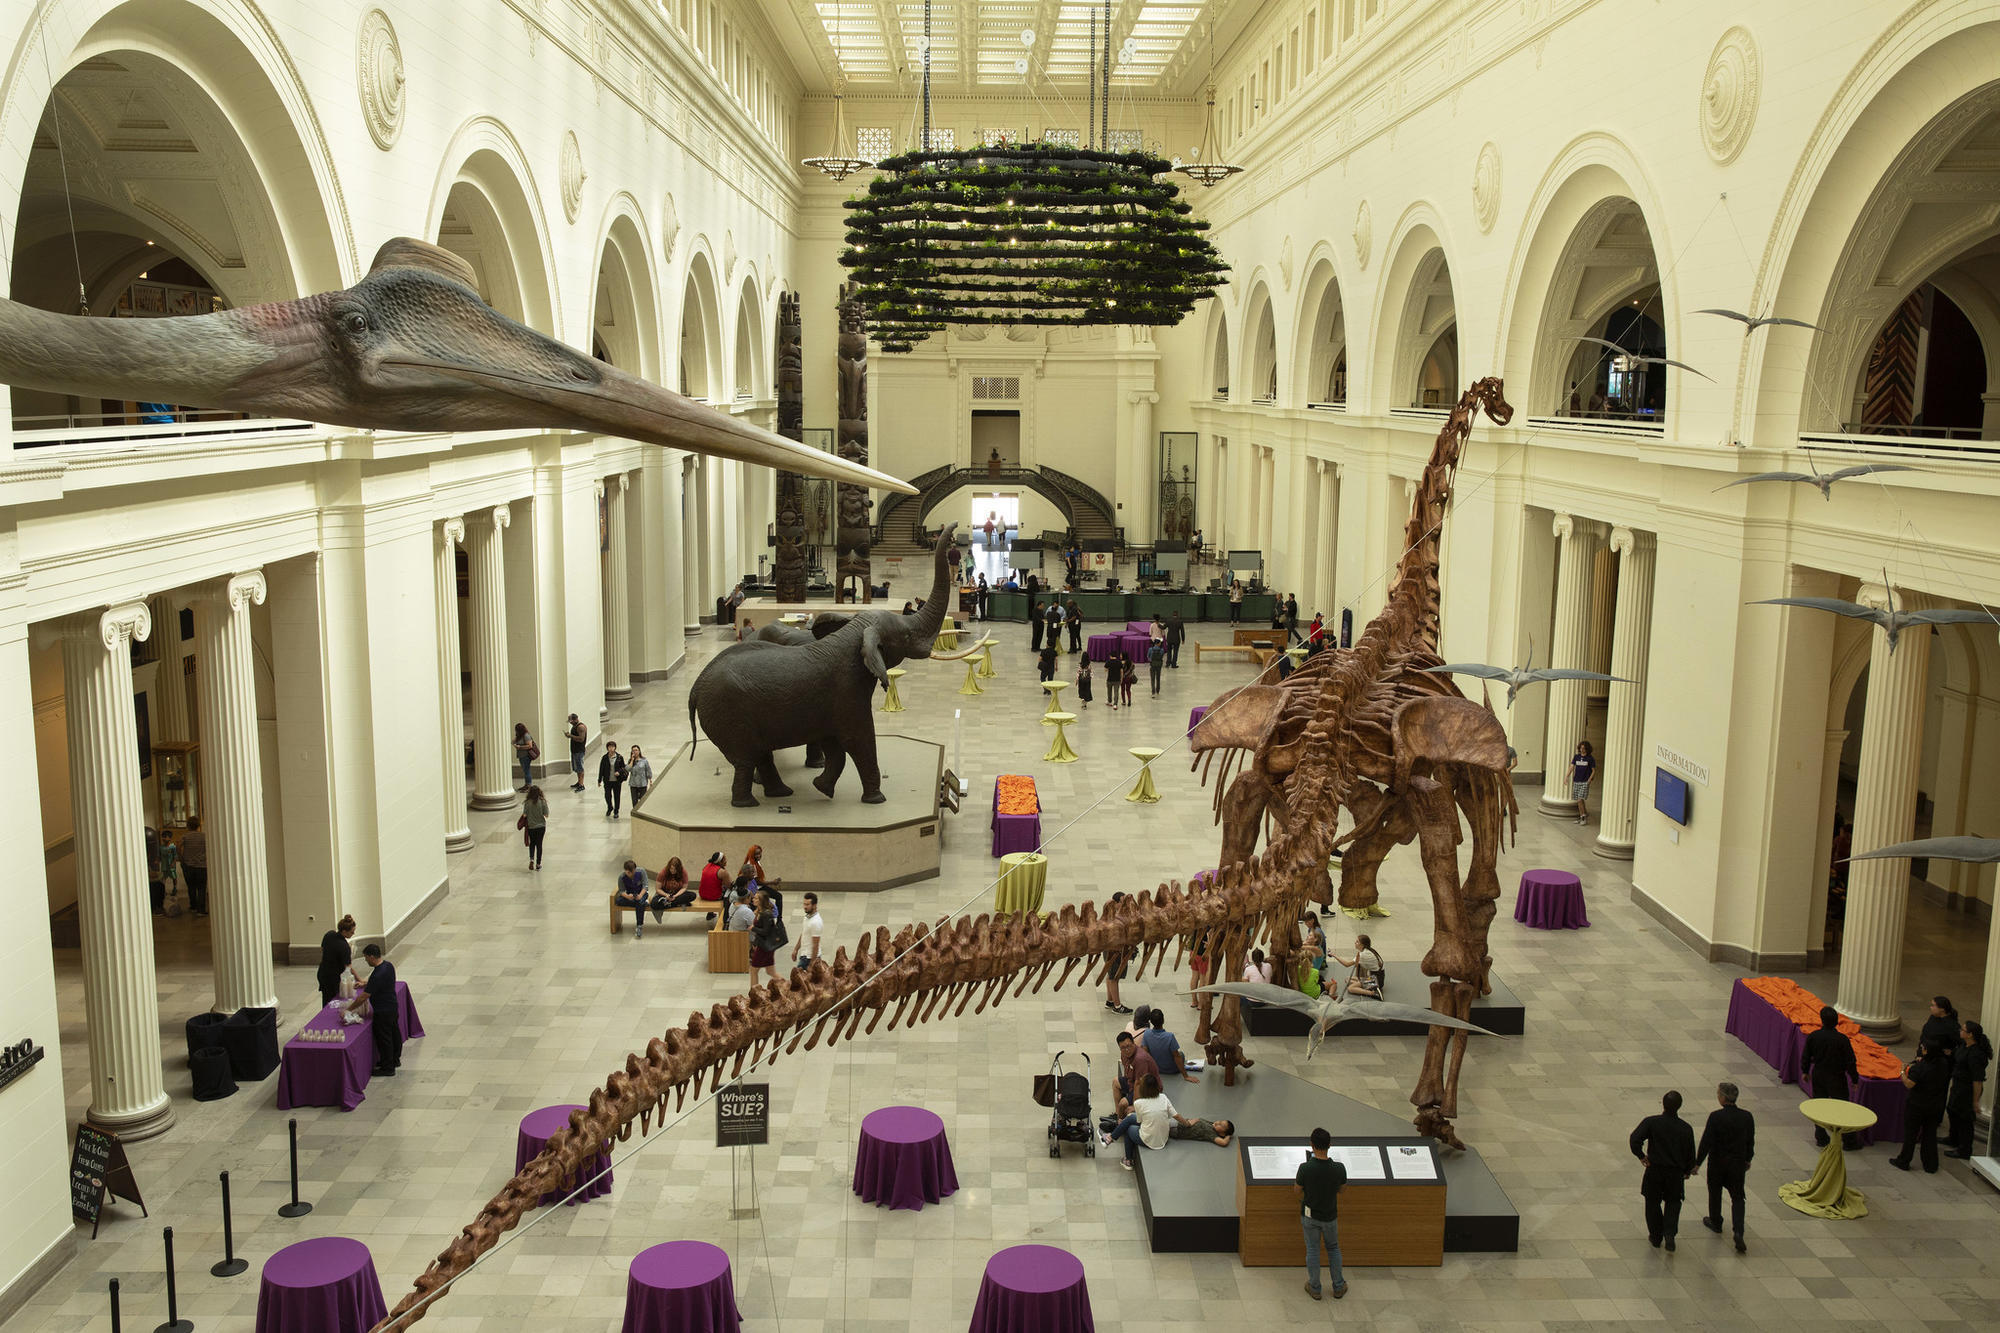 Interior of the Field Museum